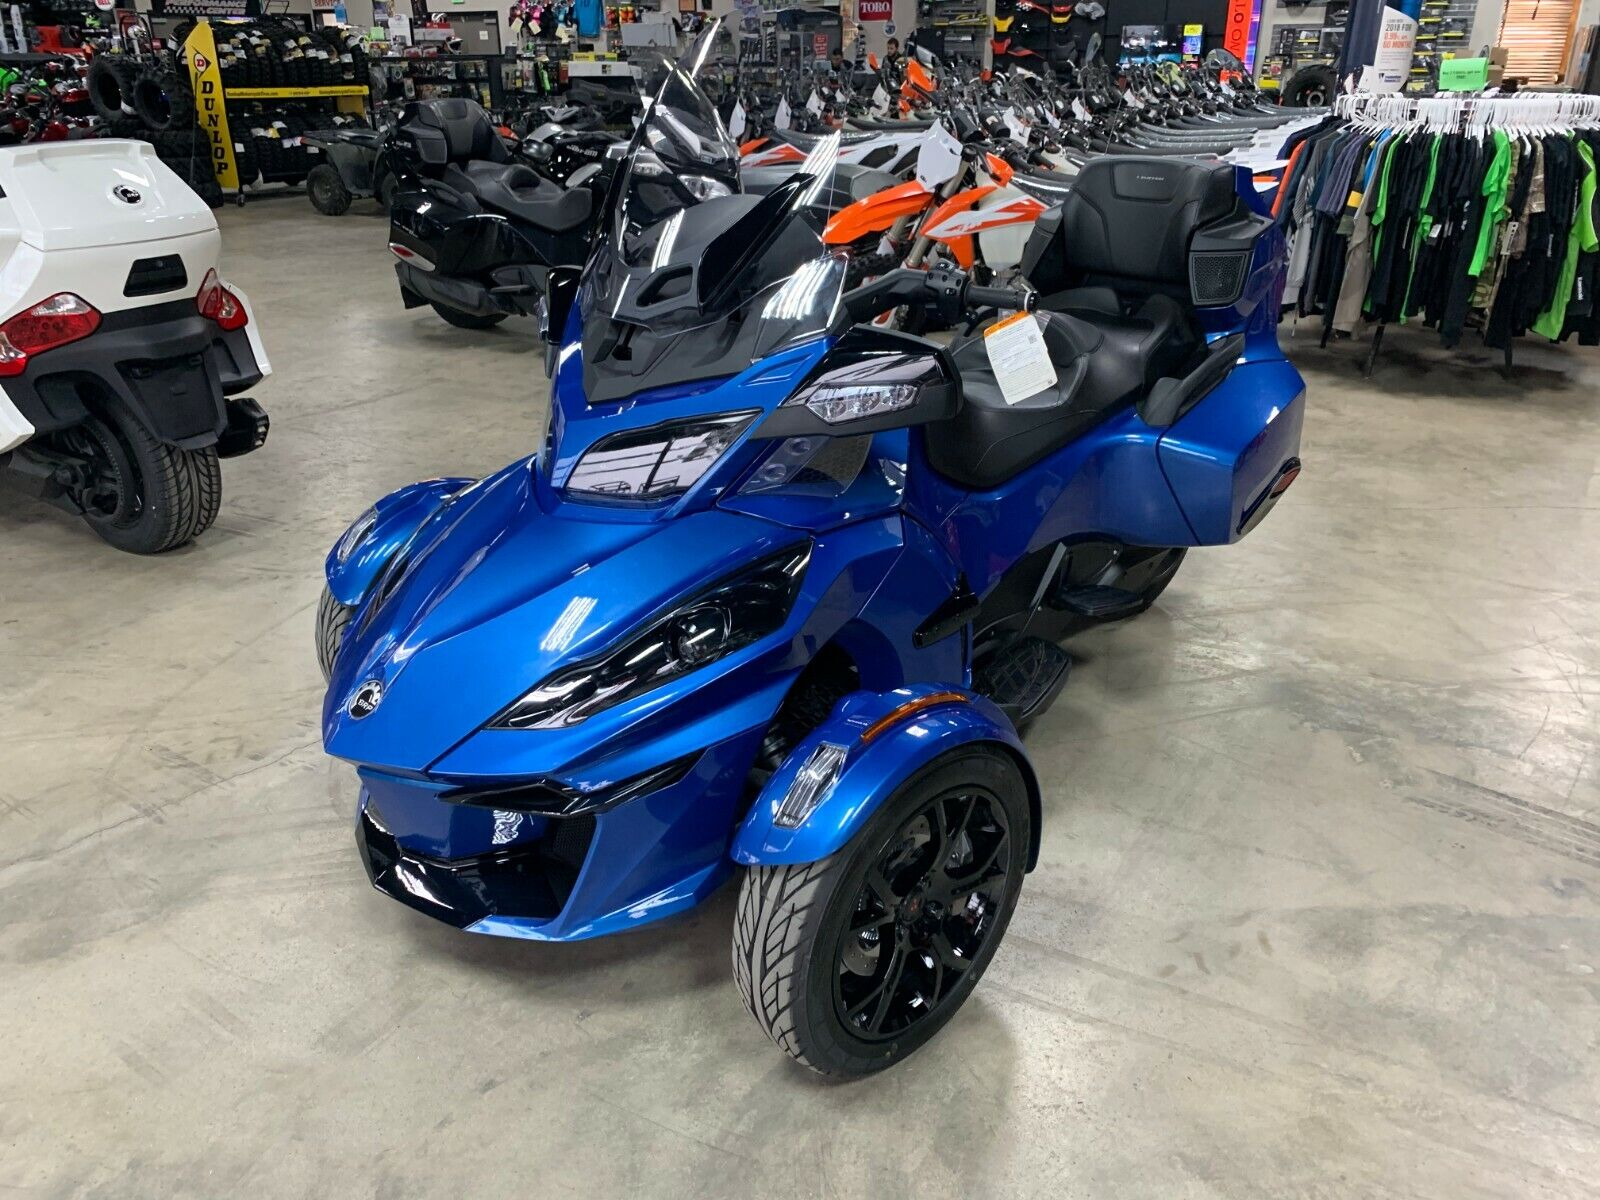 2019 Can-Am SPYDER RT LTD SE6  NEW 2019 19 CAN-AM CANAM SPYDER RT LTD SE6 OXFORD BLUE AUDIO BUY IT NOW $20499